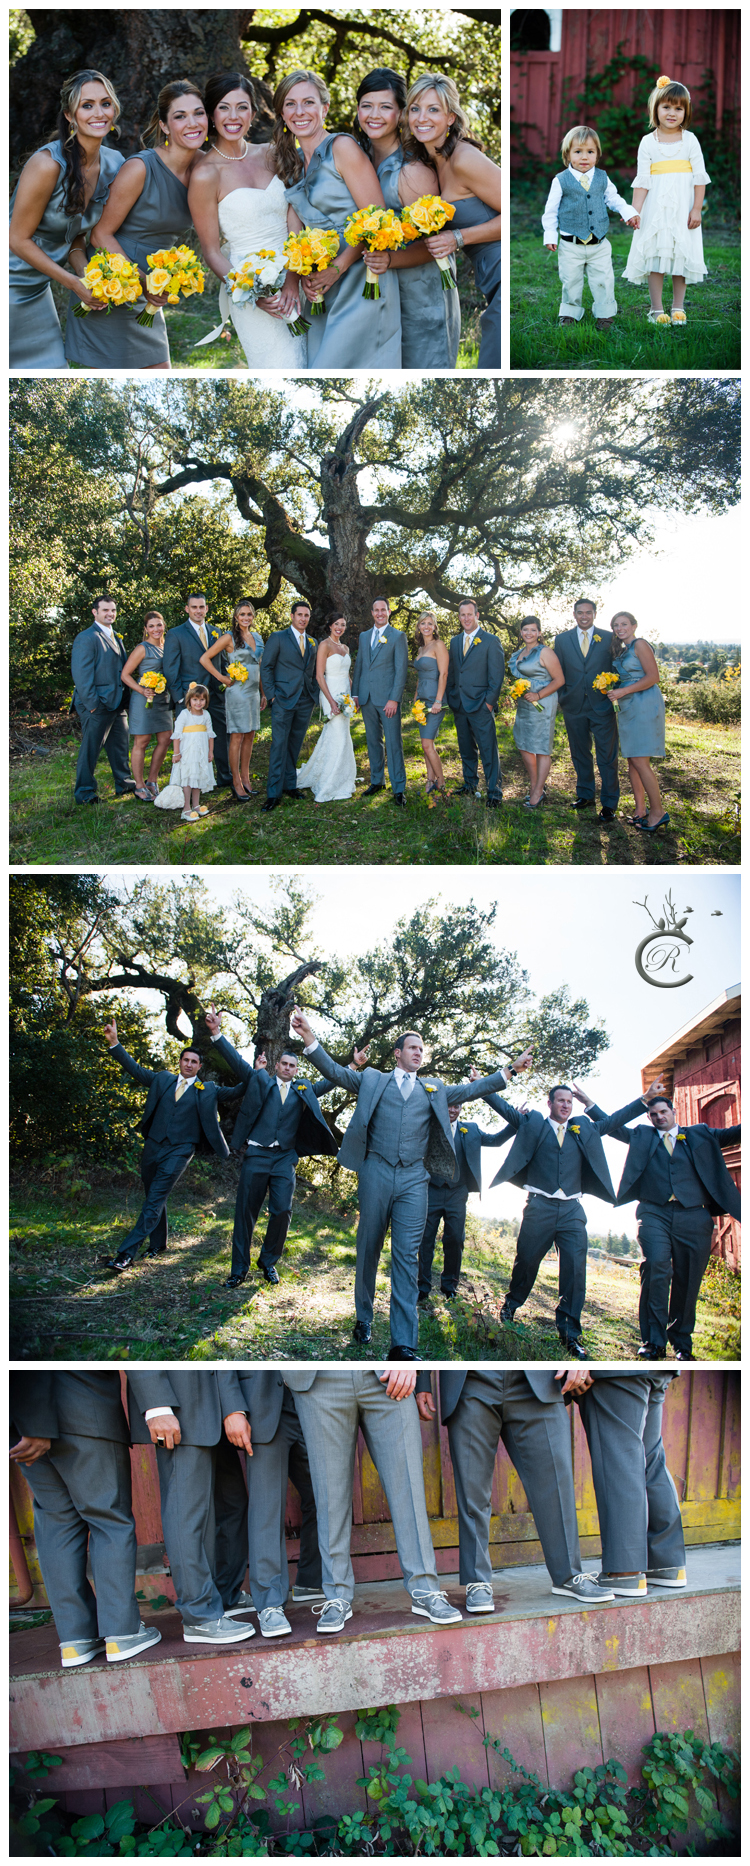 Bridal party photos at St. Francis Winery